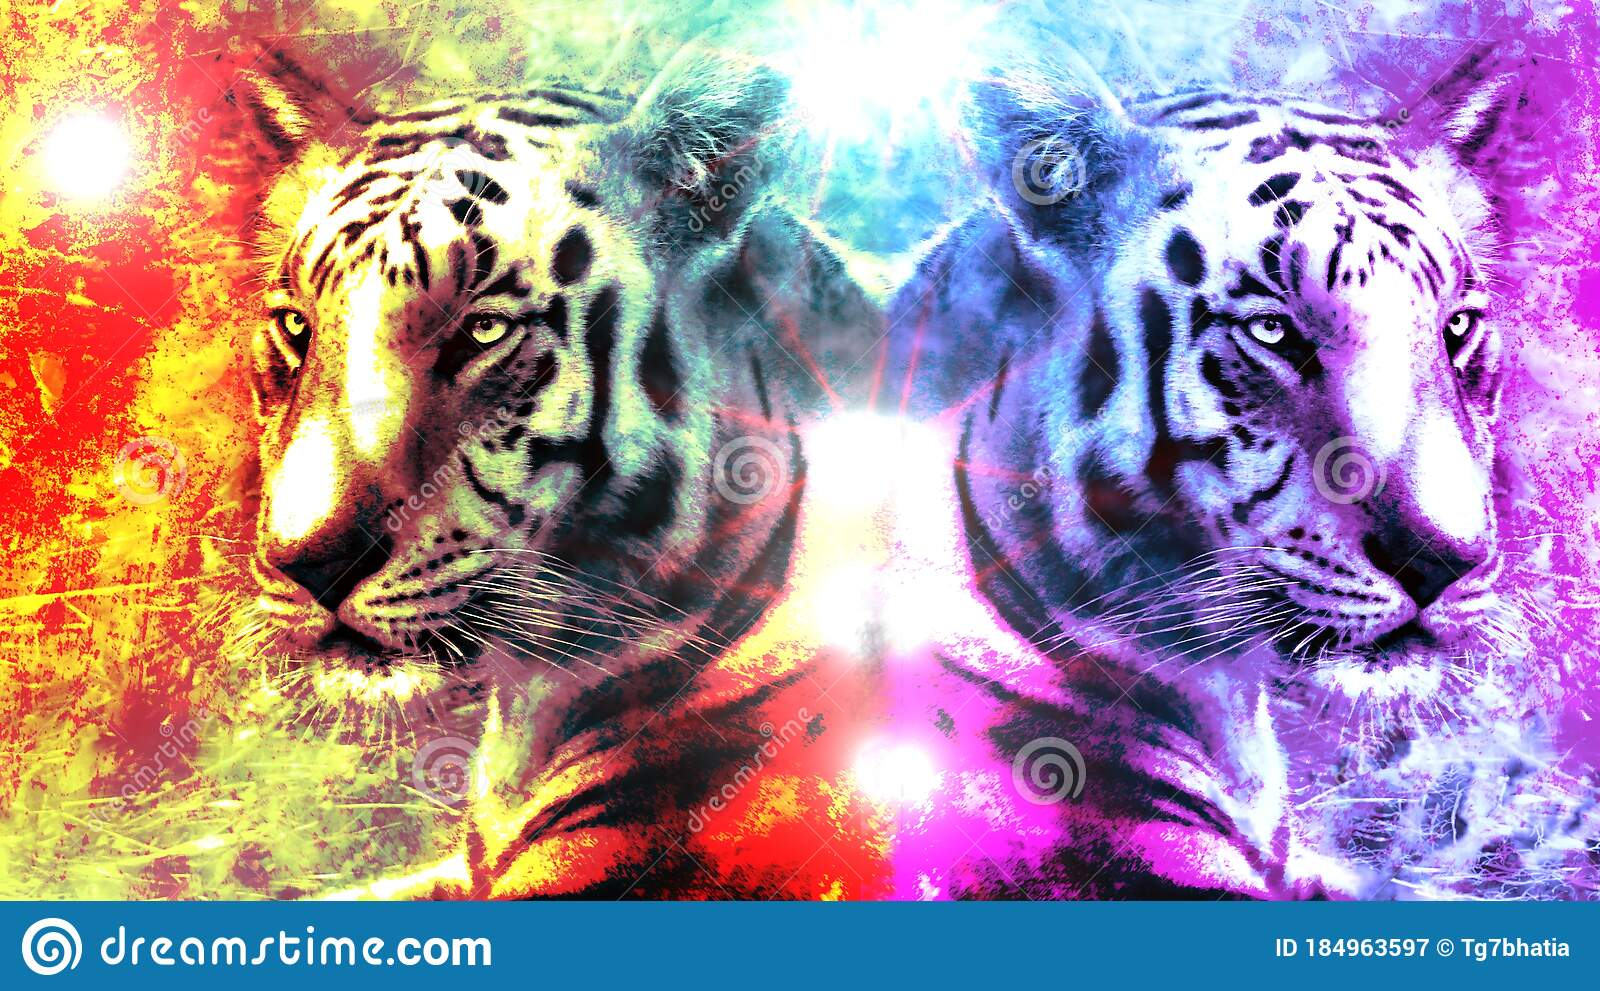 232 Tiger Graffiti Photos Free Royalty Free Stock Photos From Dreamstime